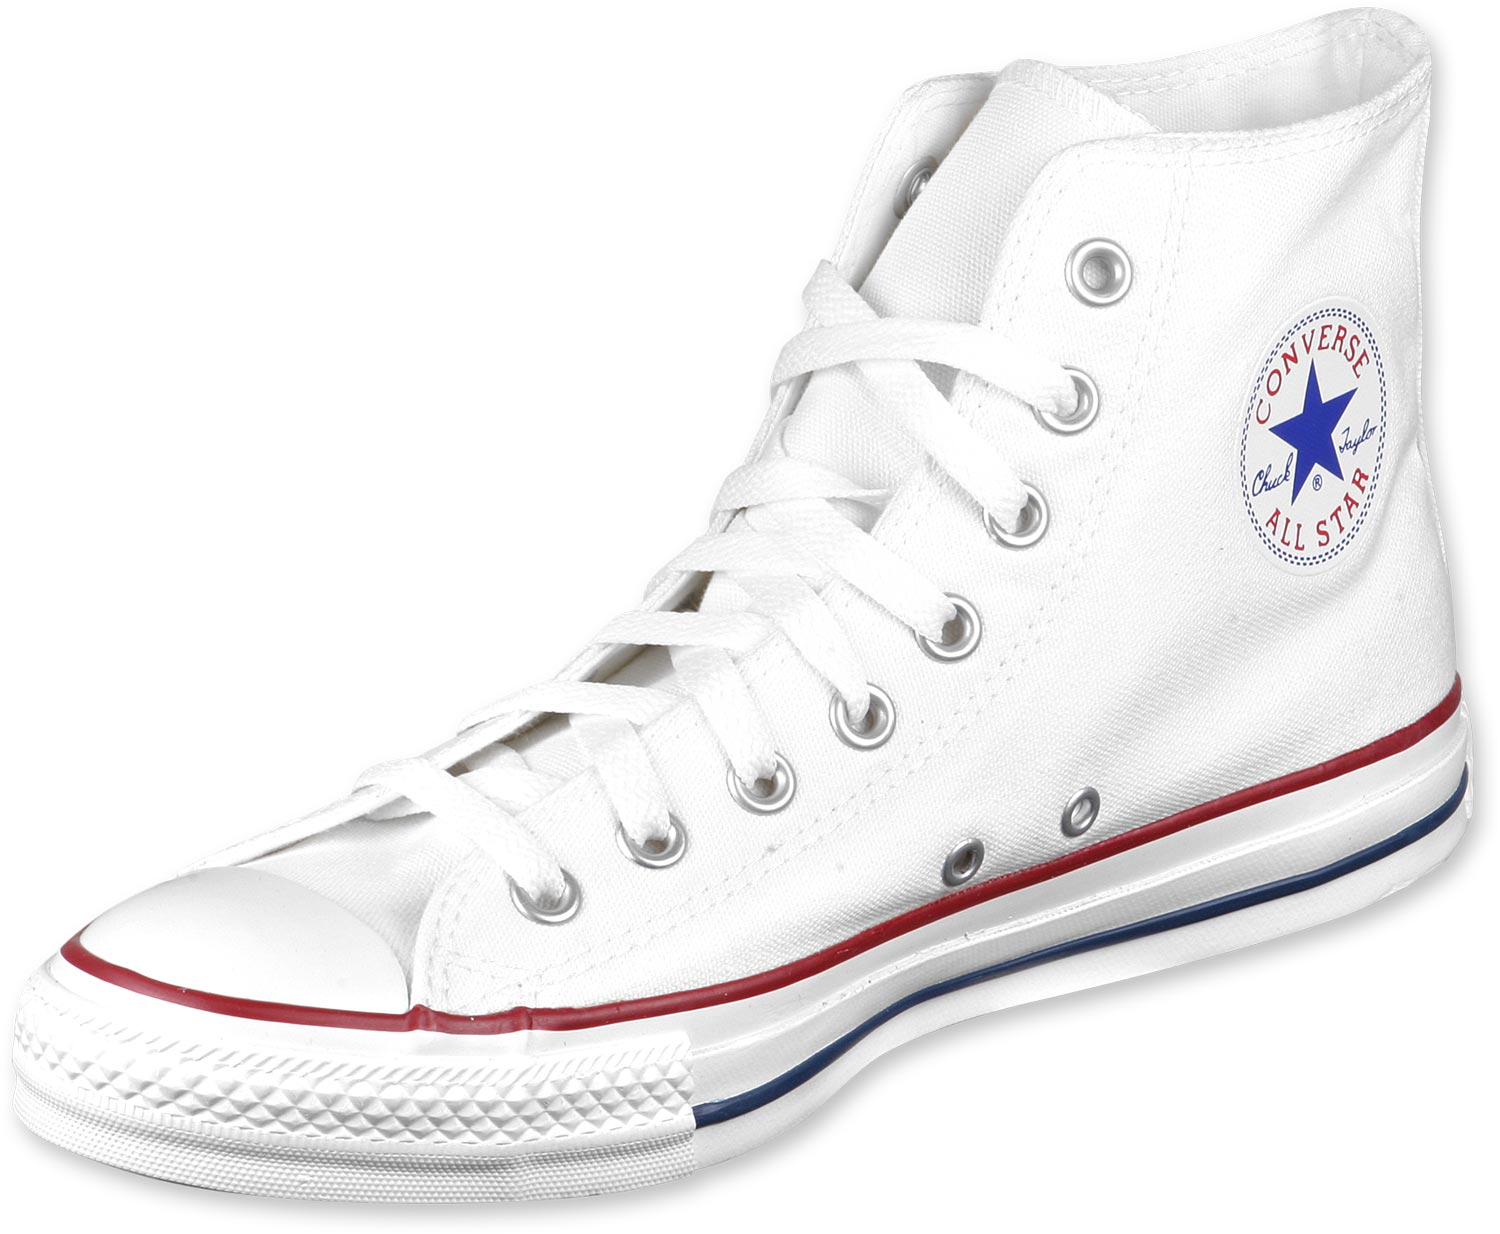 How Are Converse Shoes Manufactured